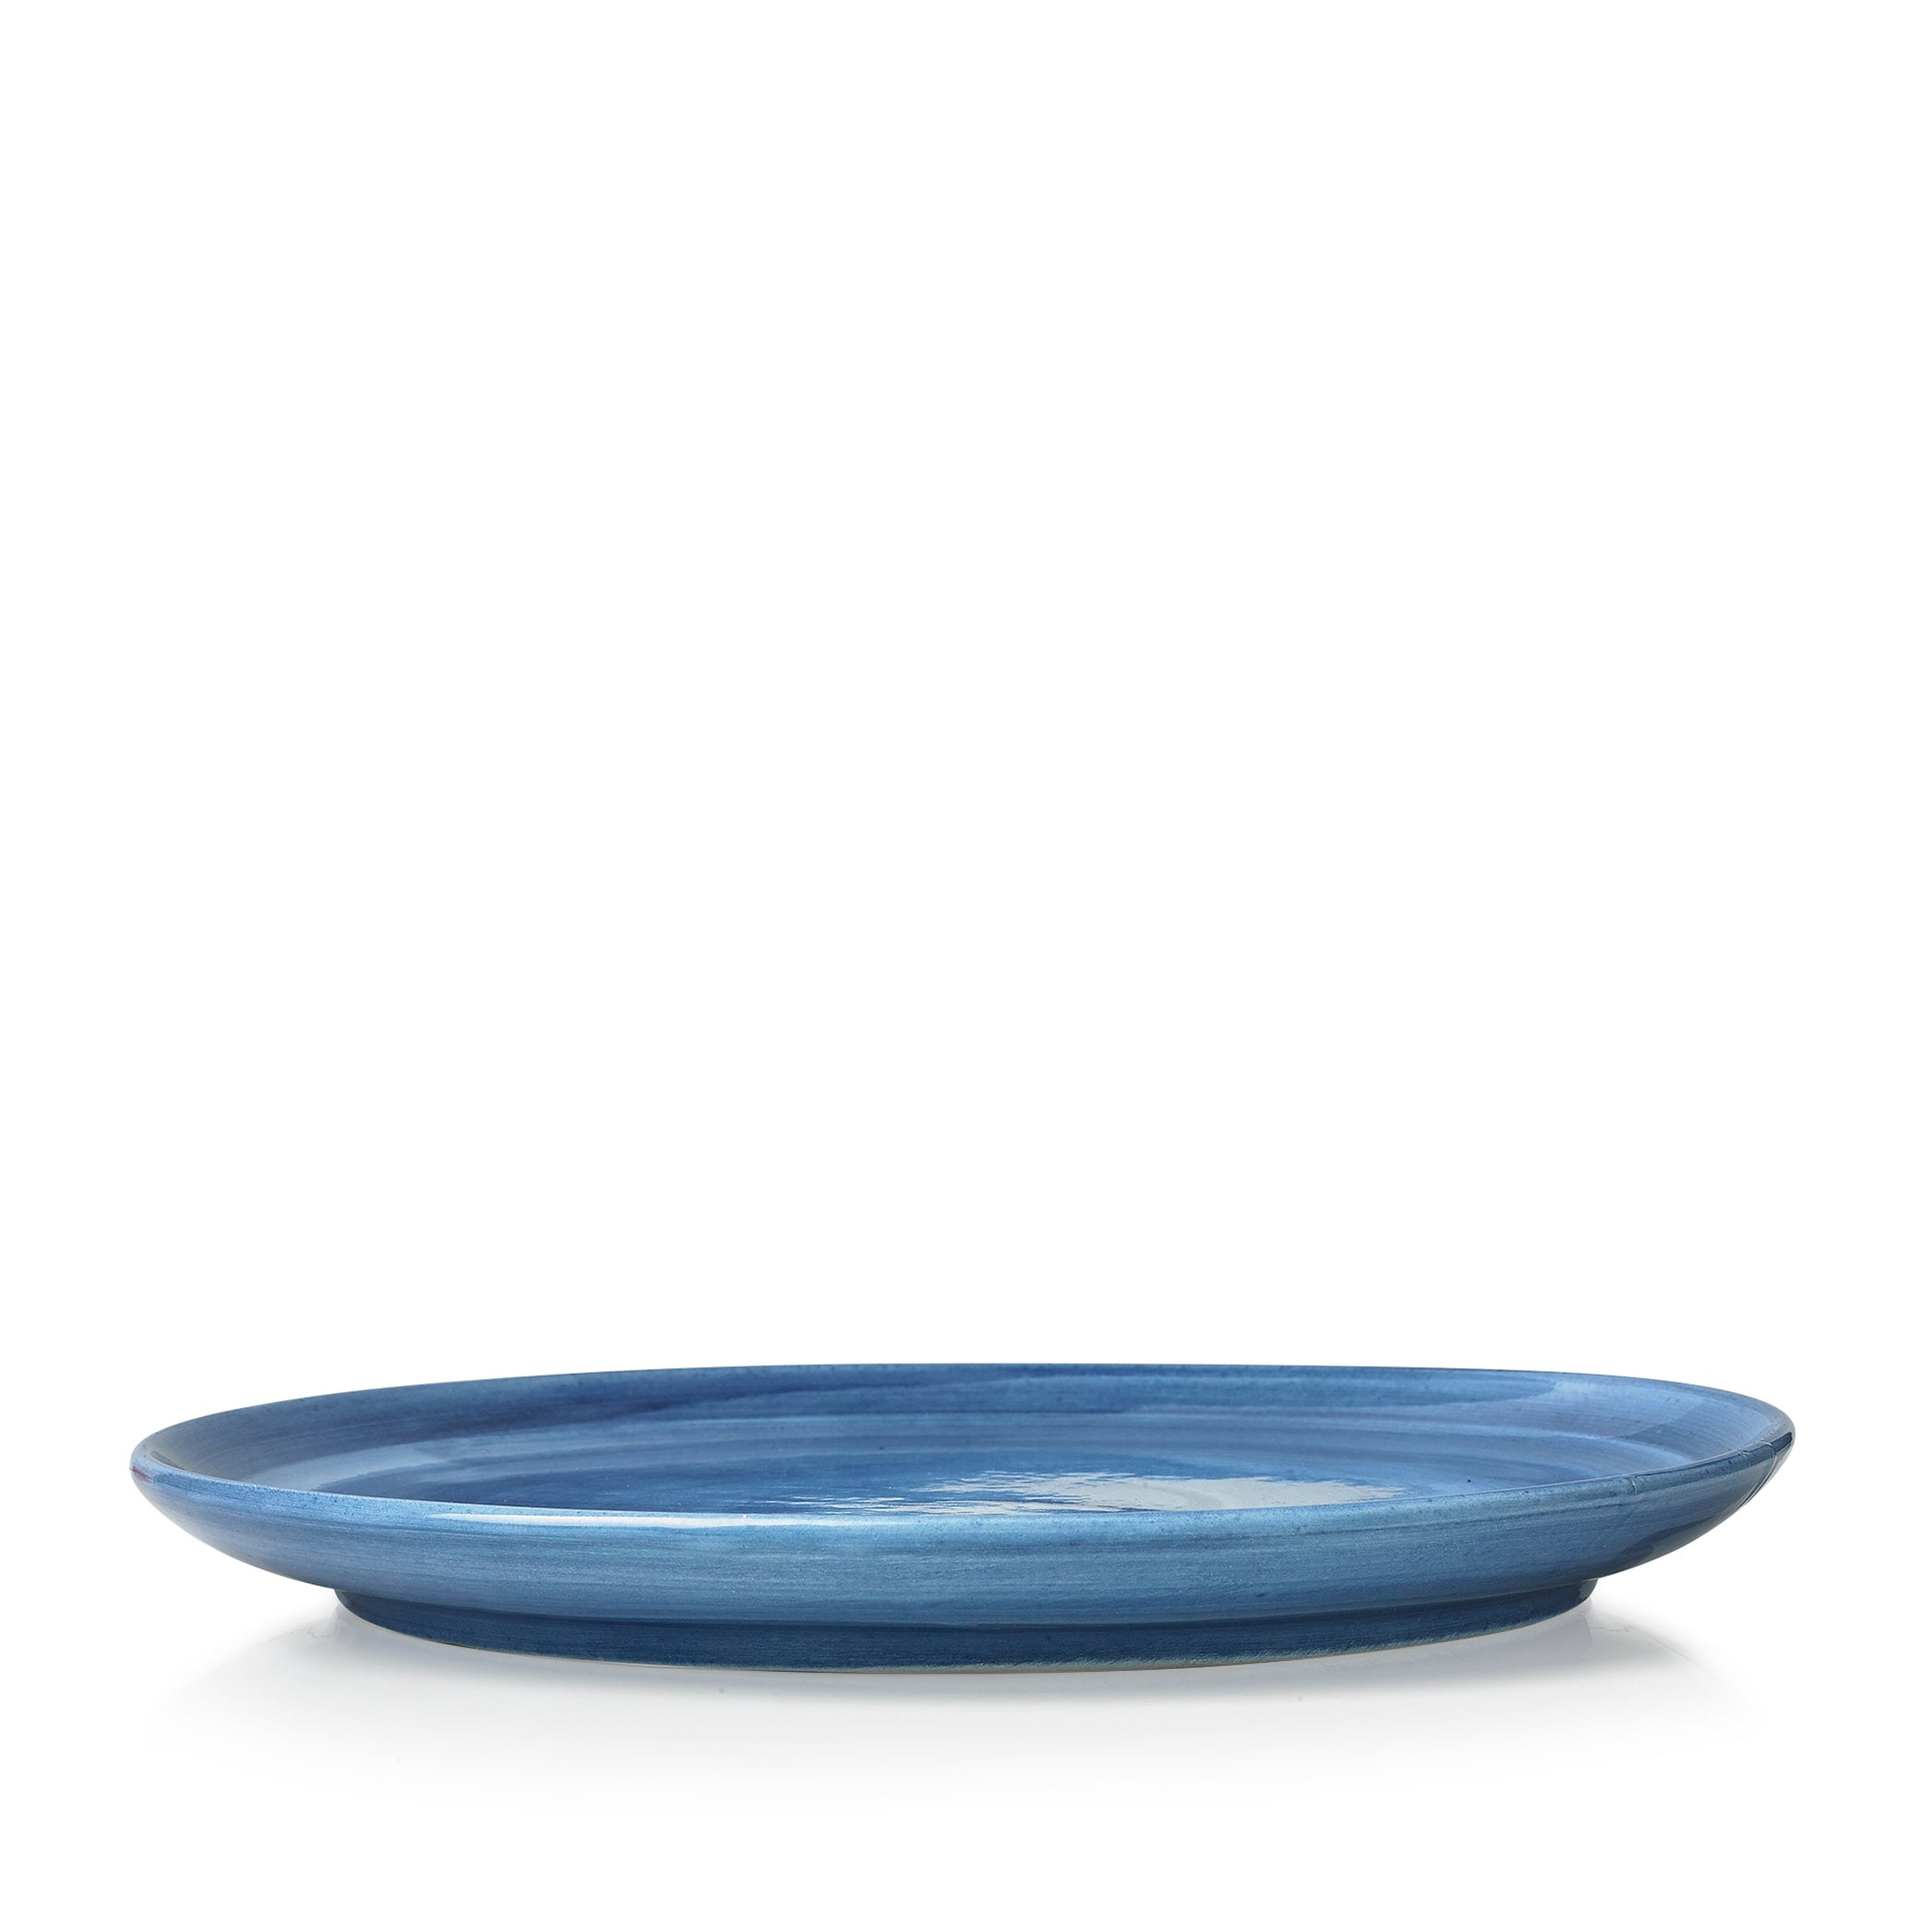 "S&B ""La Couronne"" 26cm Ceramic Dinner Plate in Blue"